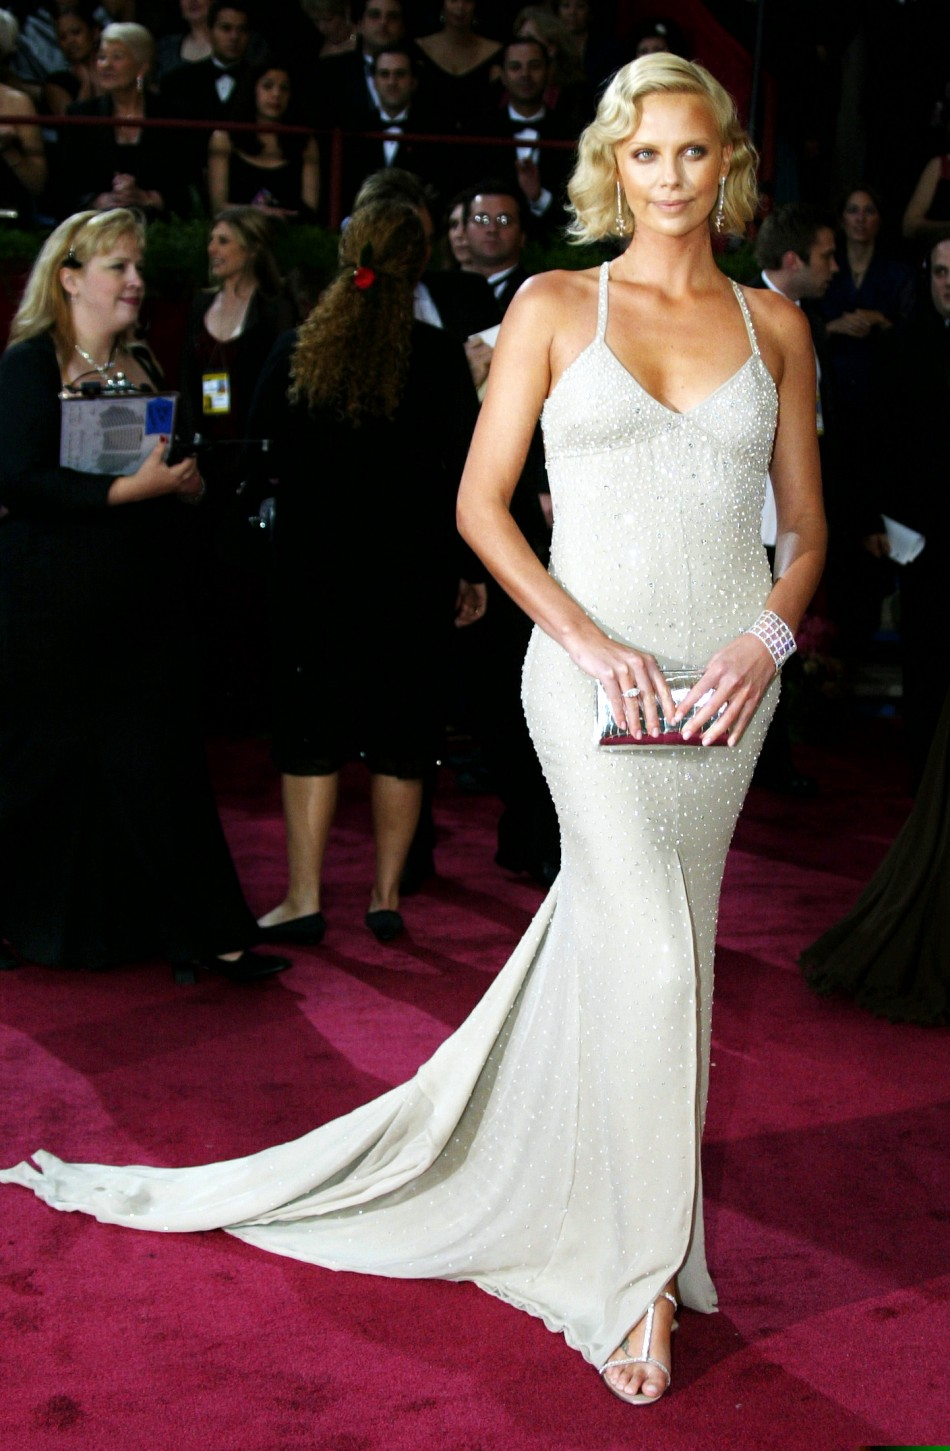 Oscar Awards Red Carpet Hottest Outfits In The Last Decade